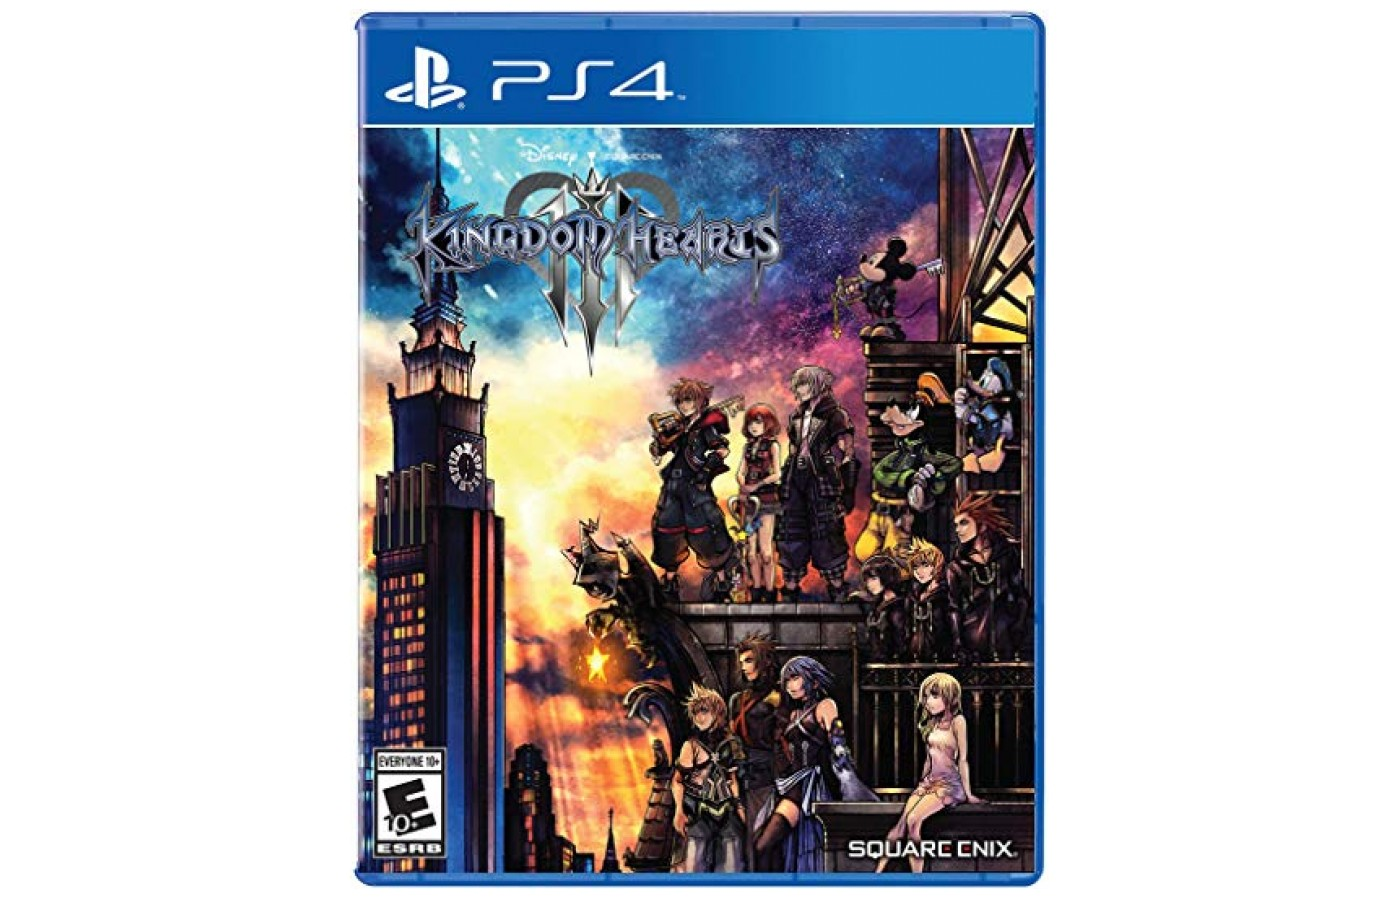 Kingdom Hearts originally started out as a PlayStation release.